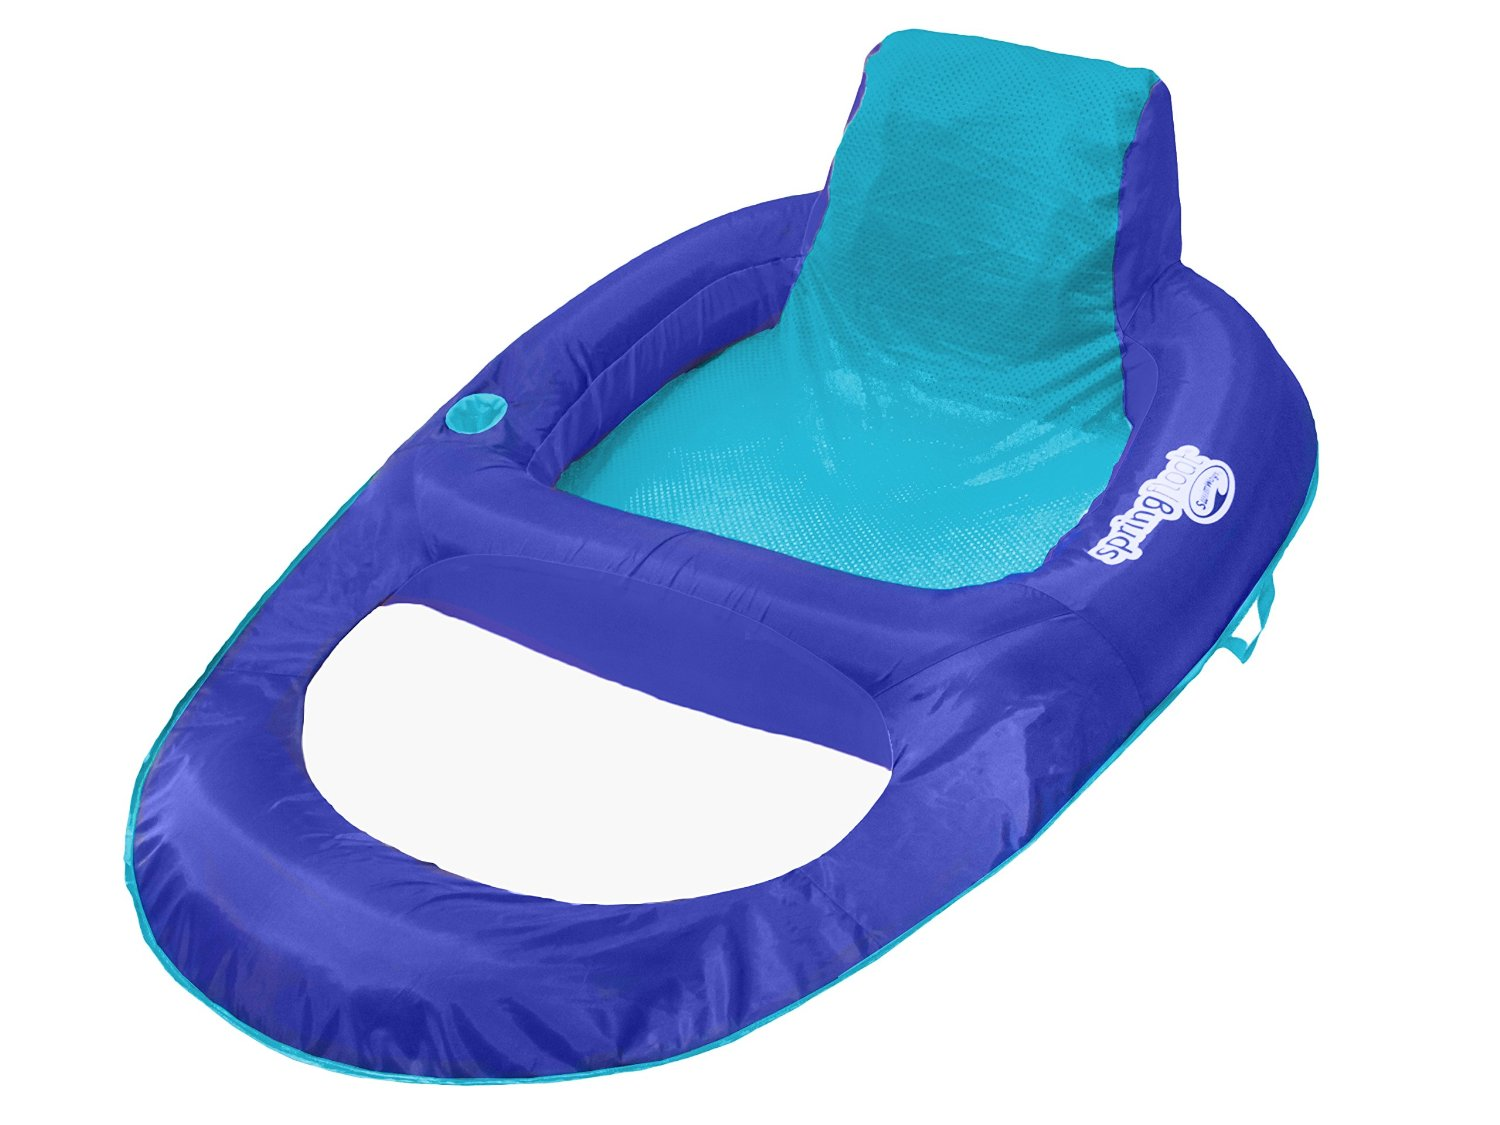 Top 10 Best Swimming Pool Loungers